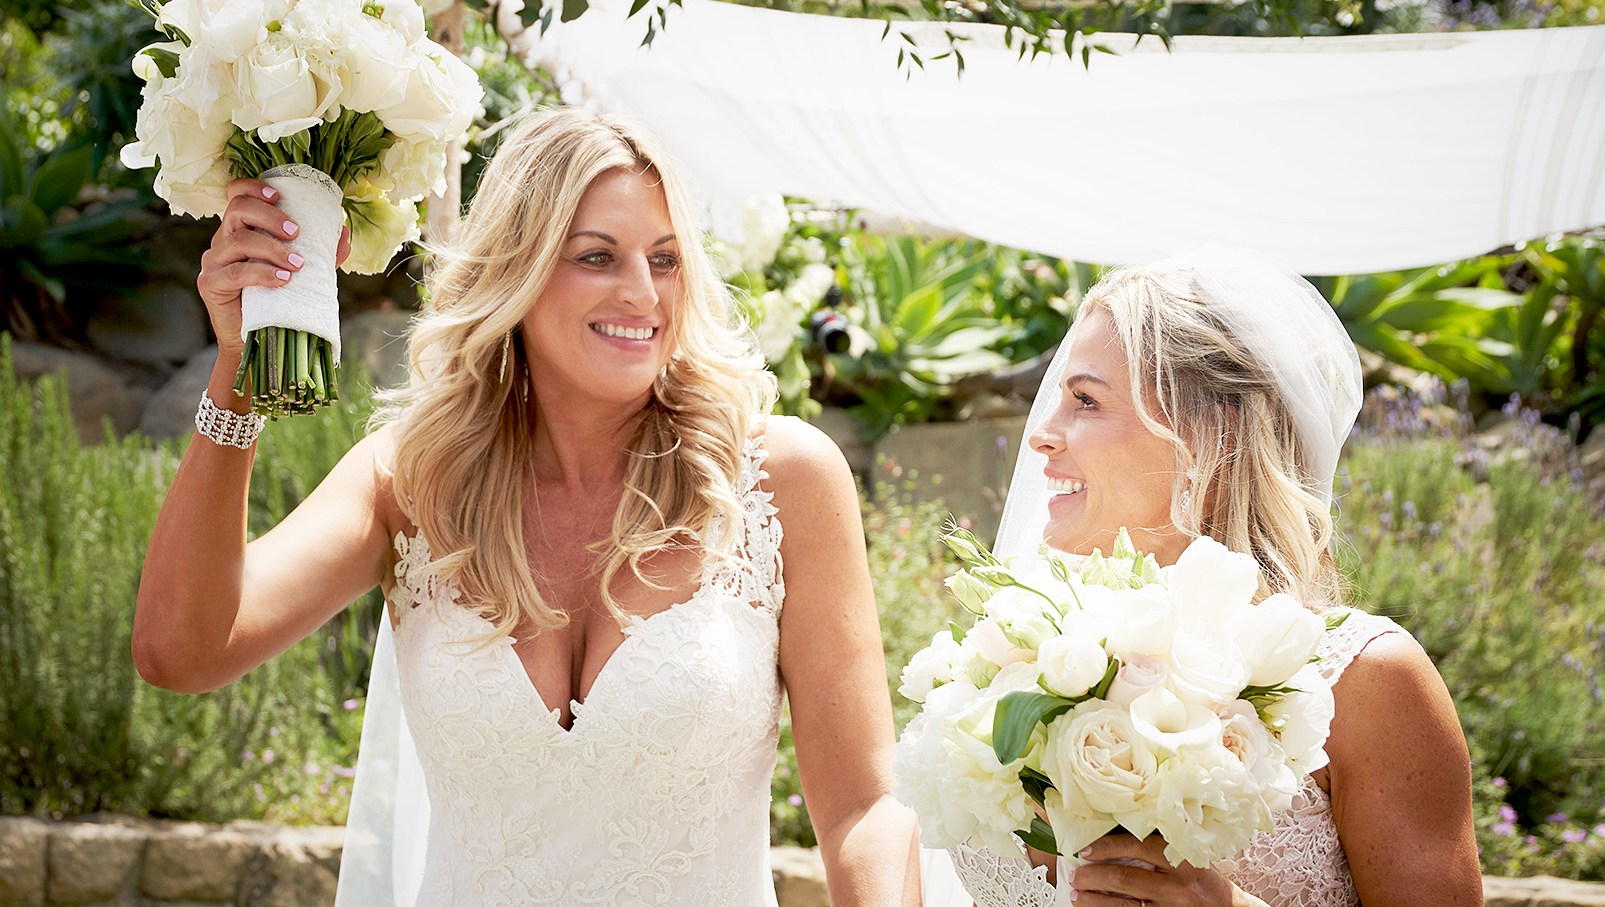 Cat-Cora-and-Nicole-Ehrlich-wedding